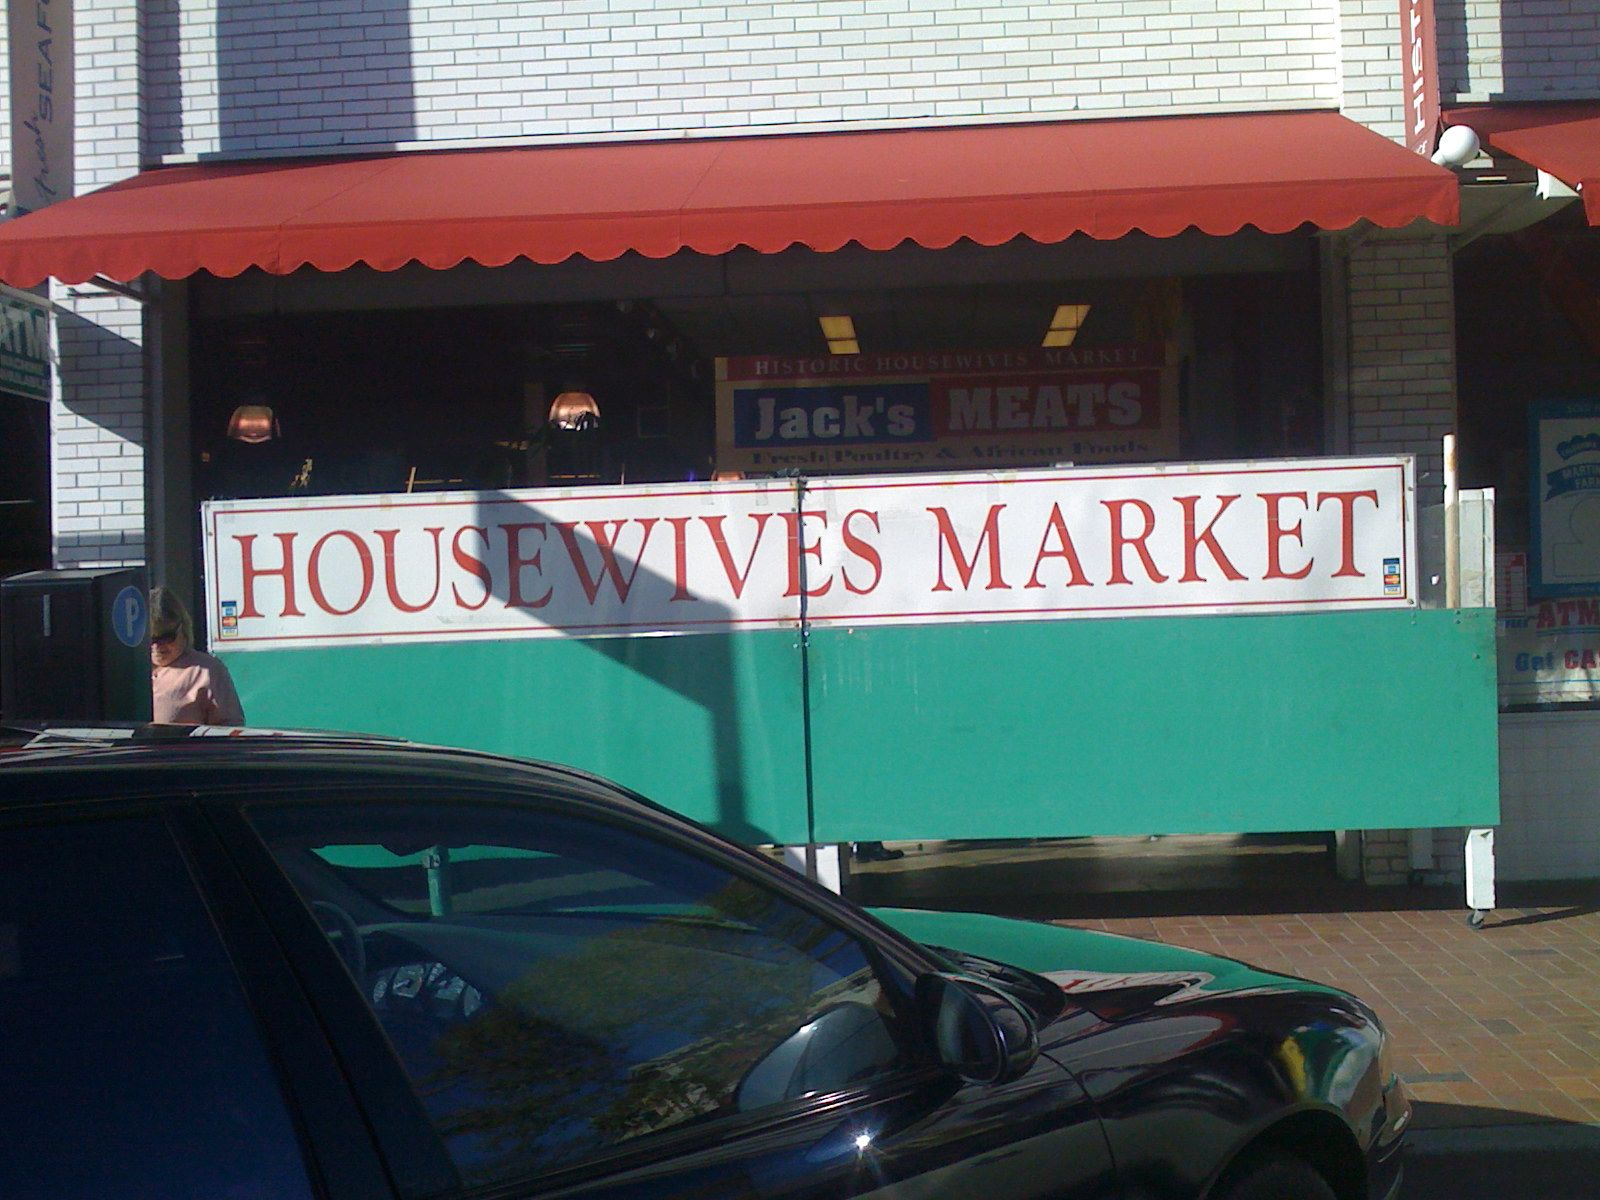 Housewives Market